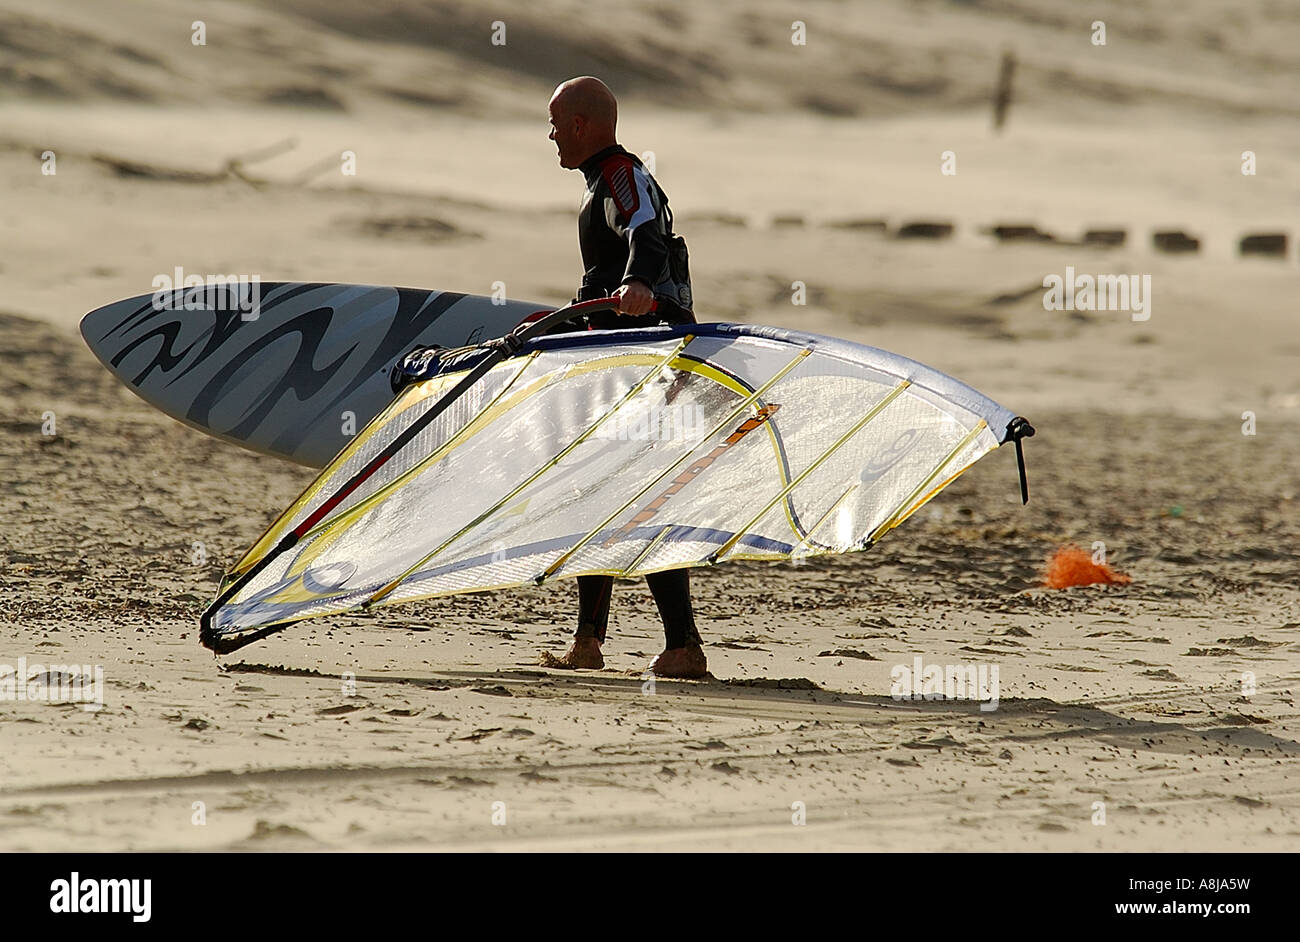 Windsurfing men on the beach Place Domburg Sealand Nederland North sea nordsee - Stock Image